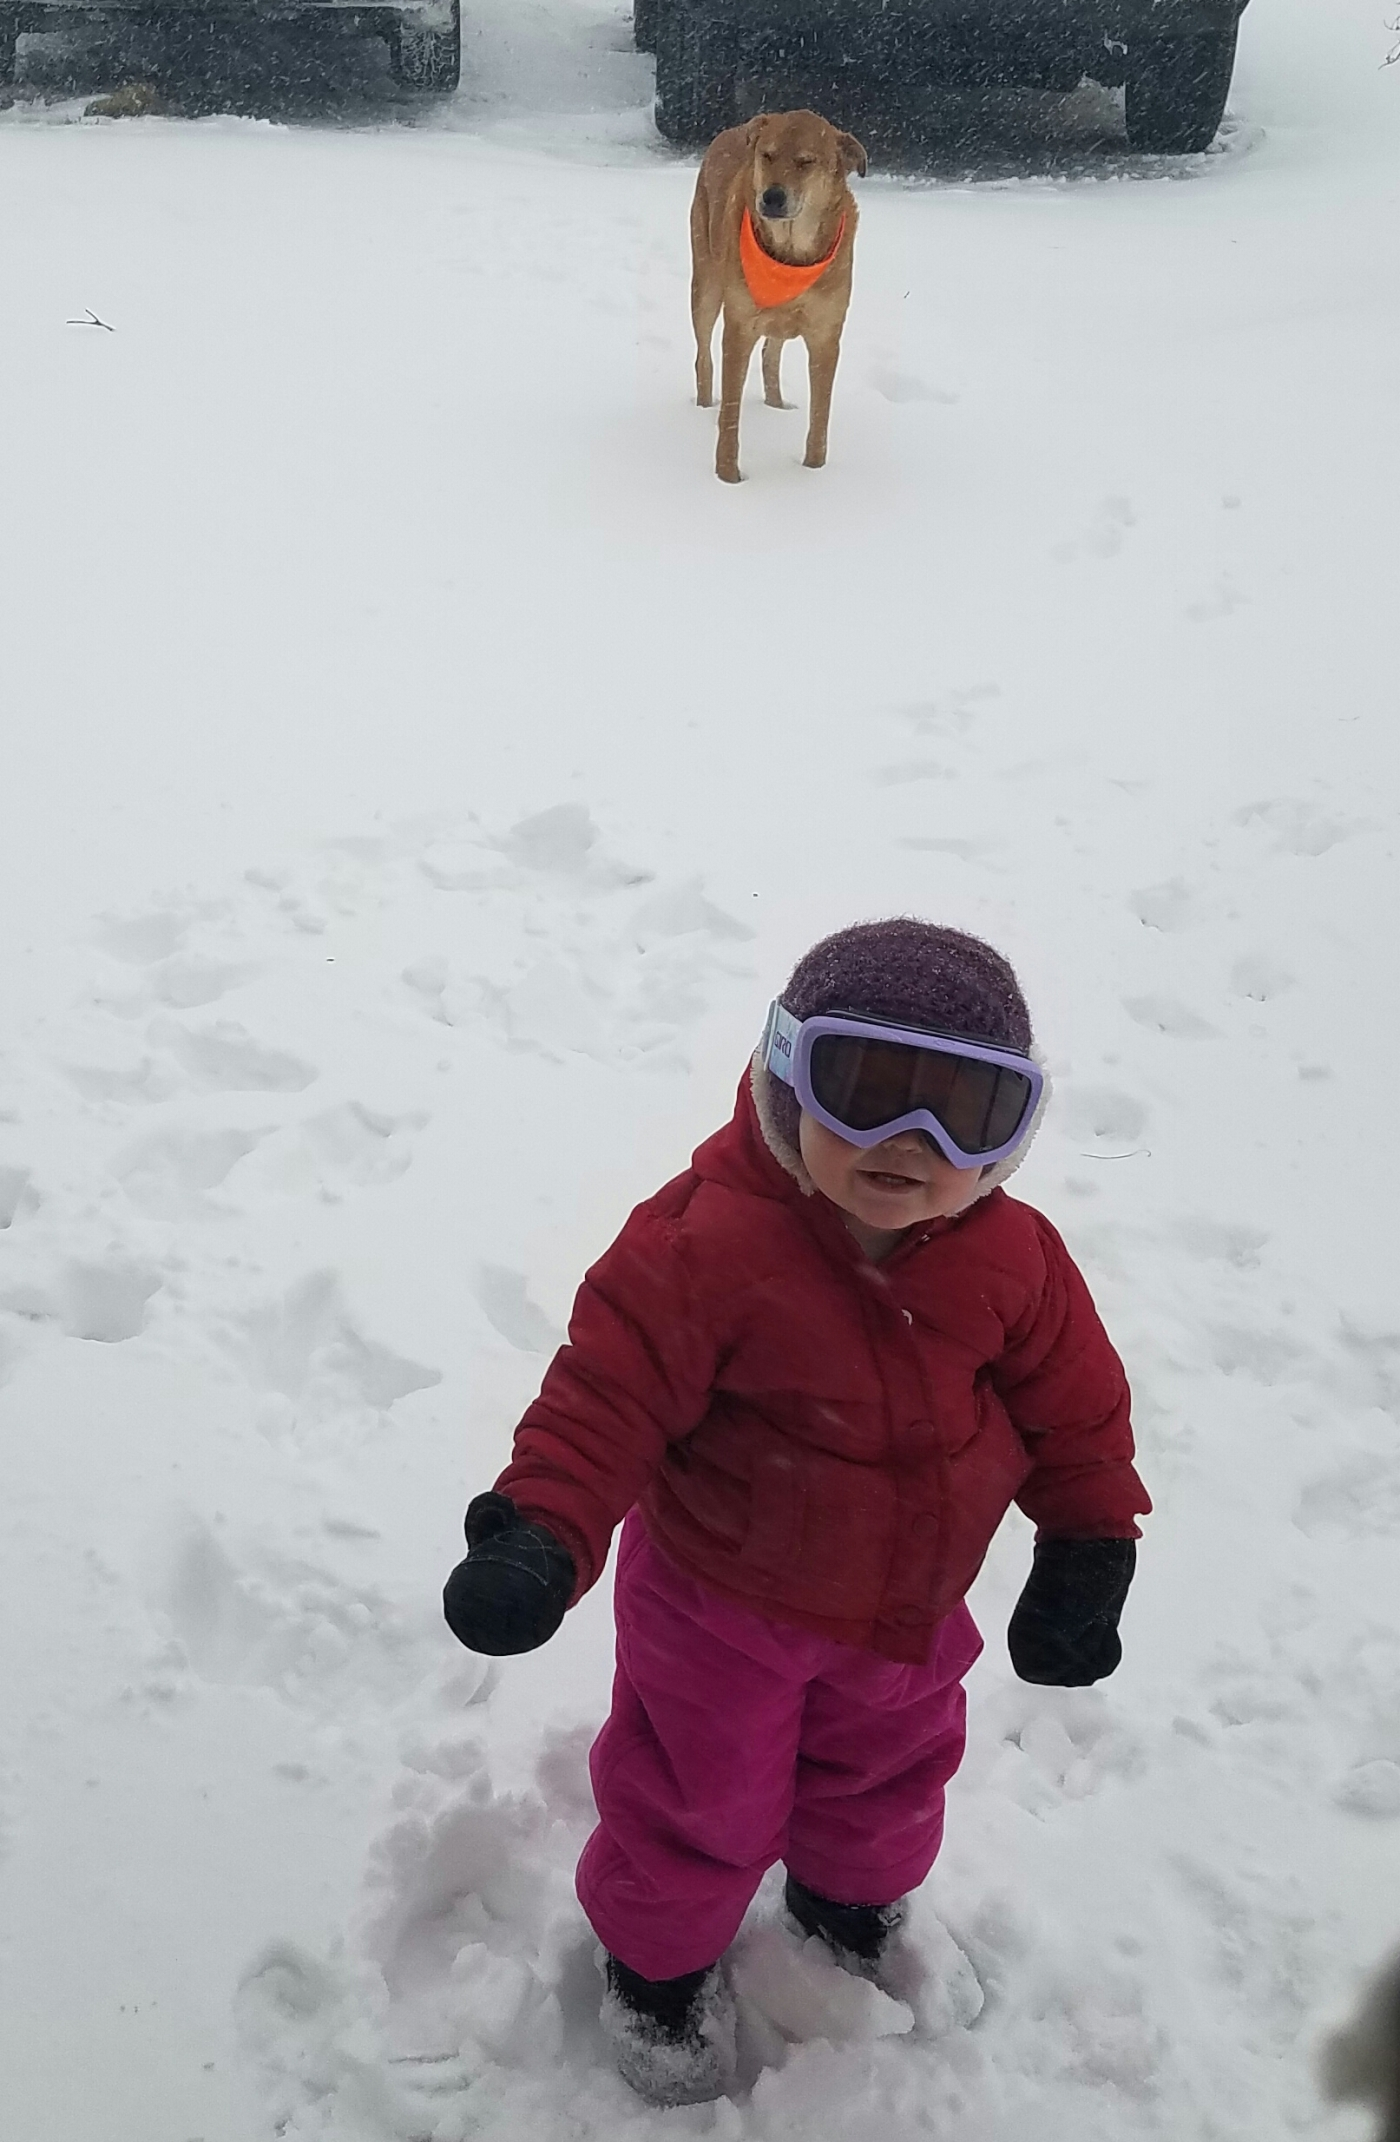 Better Beauty Vermont Toddler in Blizzard